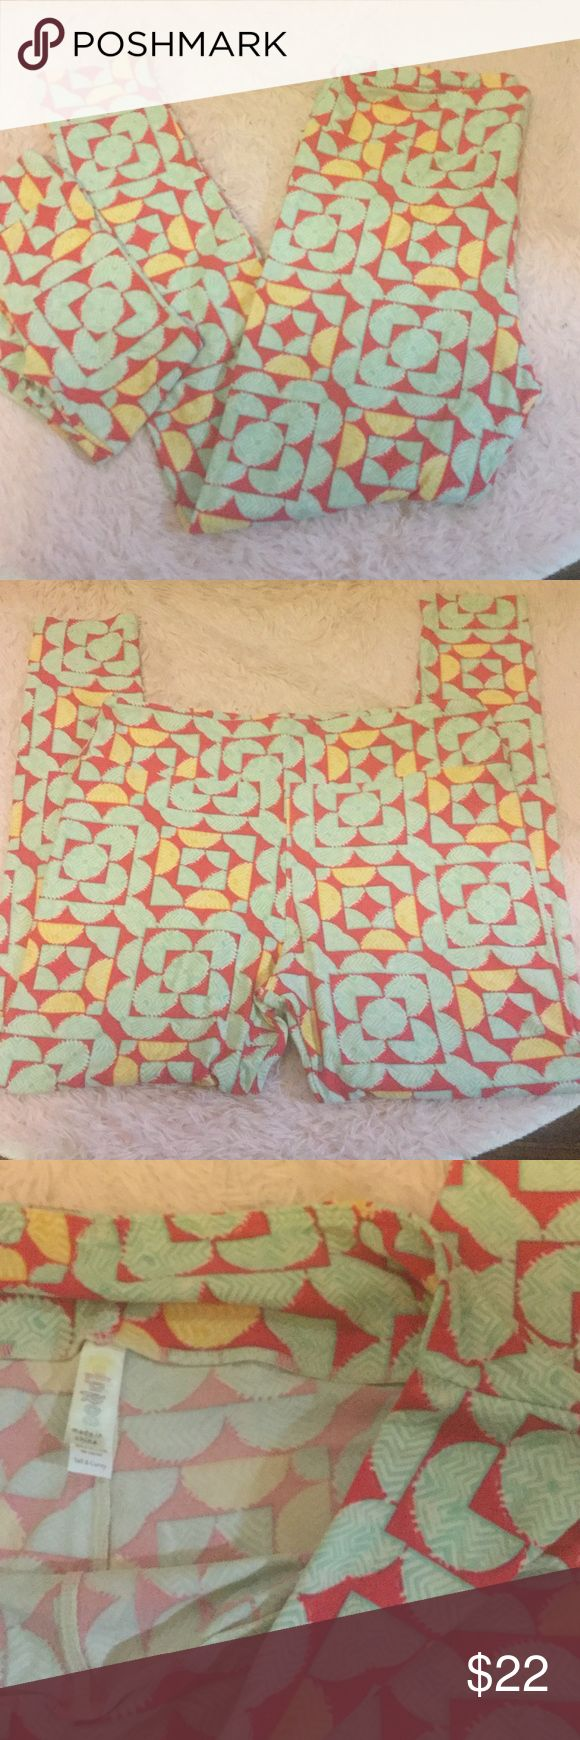 BNWOT LuLaRoe leggings. Possible mommy and me Leggings are listed separately in case someone wants individual, but will make a great mommy and me set! Tall and curvy BNWOT LuLaRoe leggings. Bundle with kids for discount/offer on mommy and me. LuLaRoe Pants Leggings